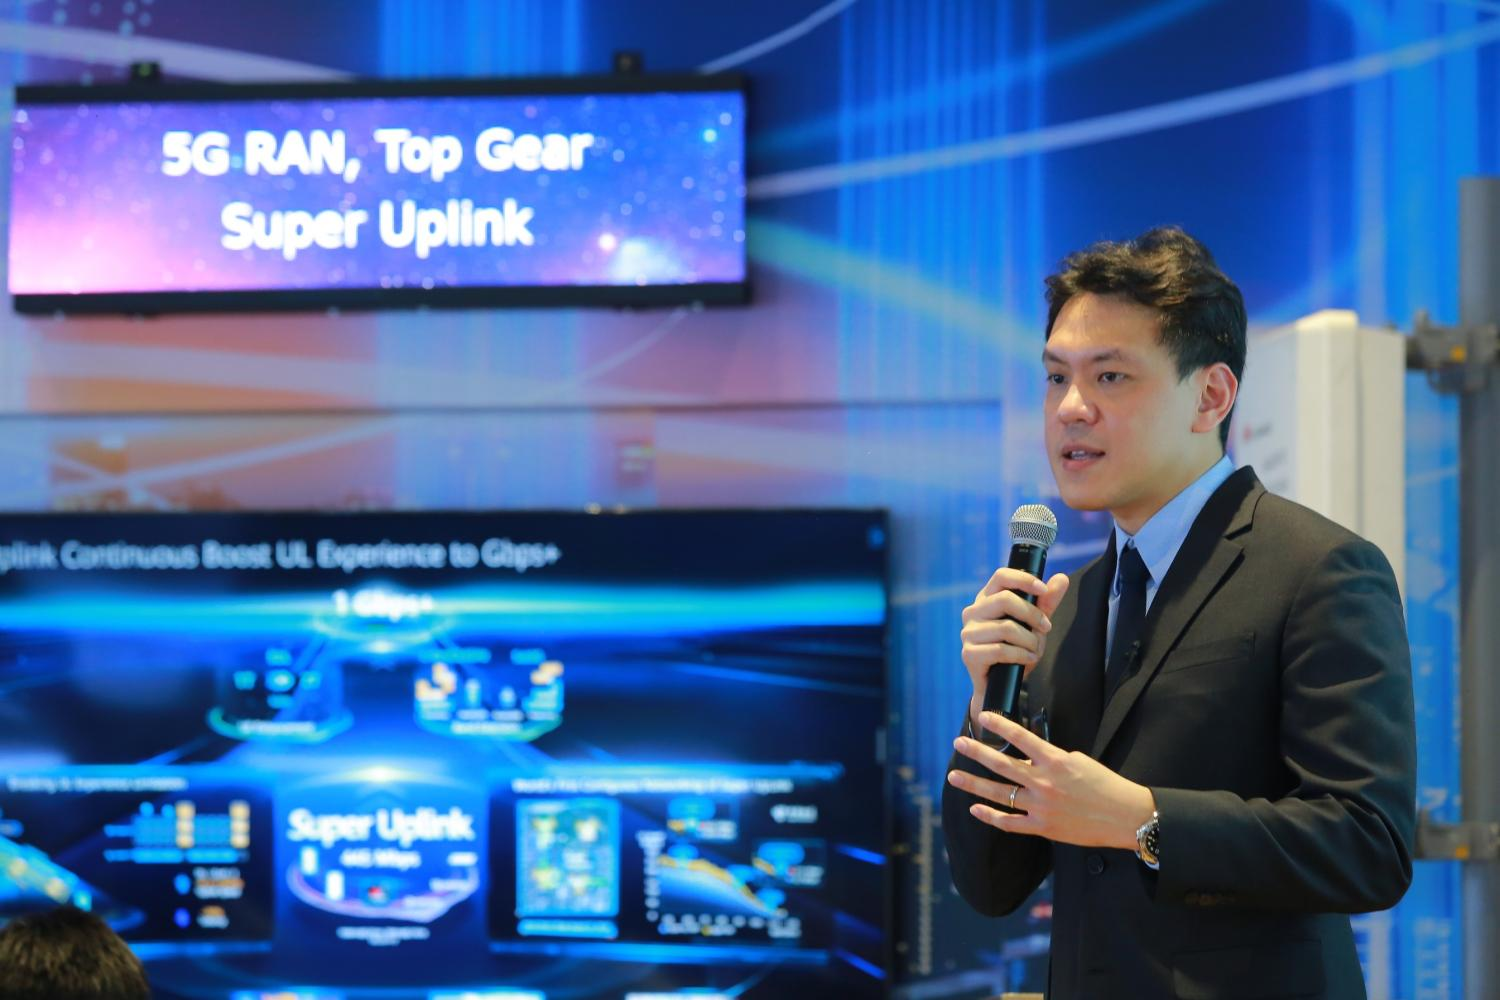 Woragarn Likhitdechasakdi, deputy chief technology officer of the carrier network of Huawei Technologies Thailand unveils 5G trends in Thailand at '5G Ecosystem and the Future of Thailand' seminar. *No photo credit*